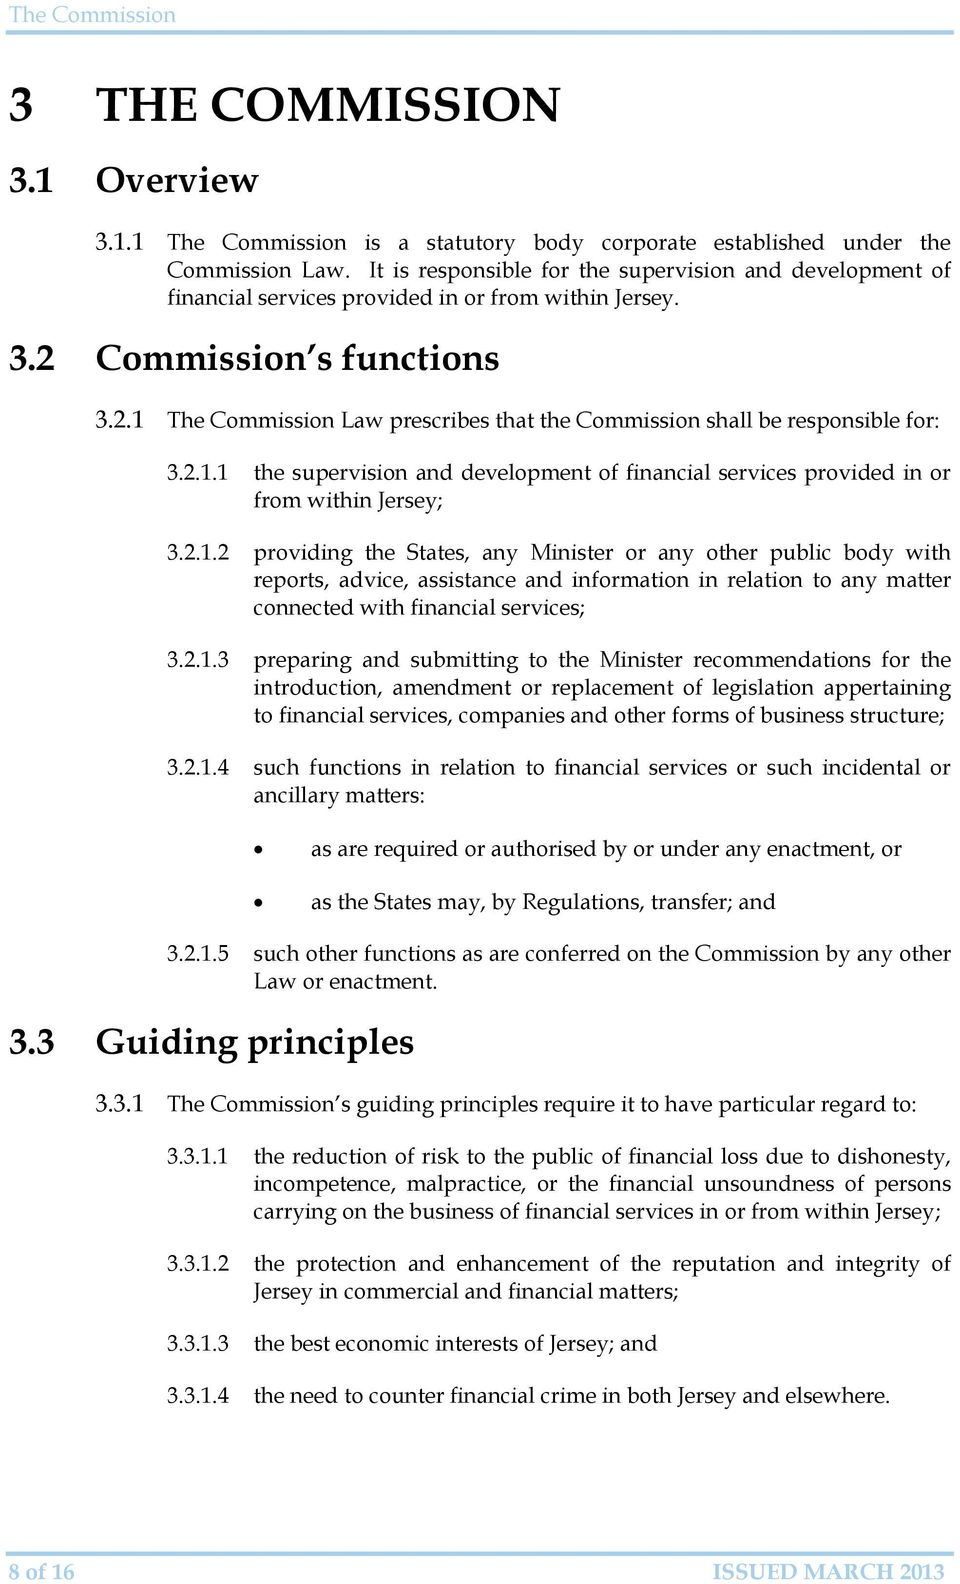 2.1.1 the supervision and development of financial services provided in or from within Jersey; 3.2.1.2 providing the States, any Minister or any other public body with reports, advice, assistance and information in relation to any matter connected with financial services; 3.